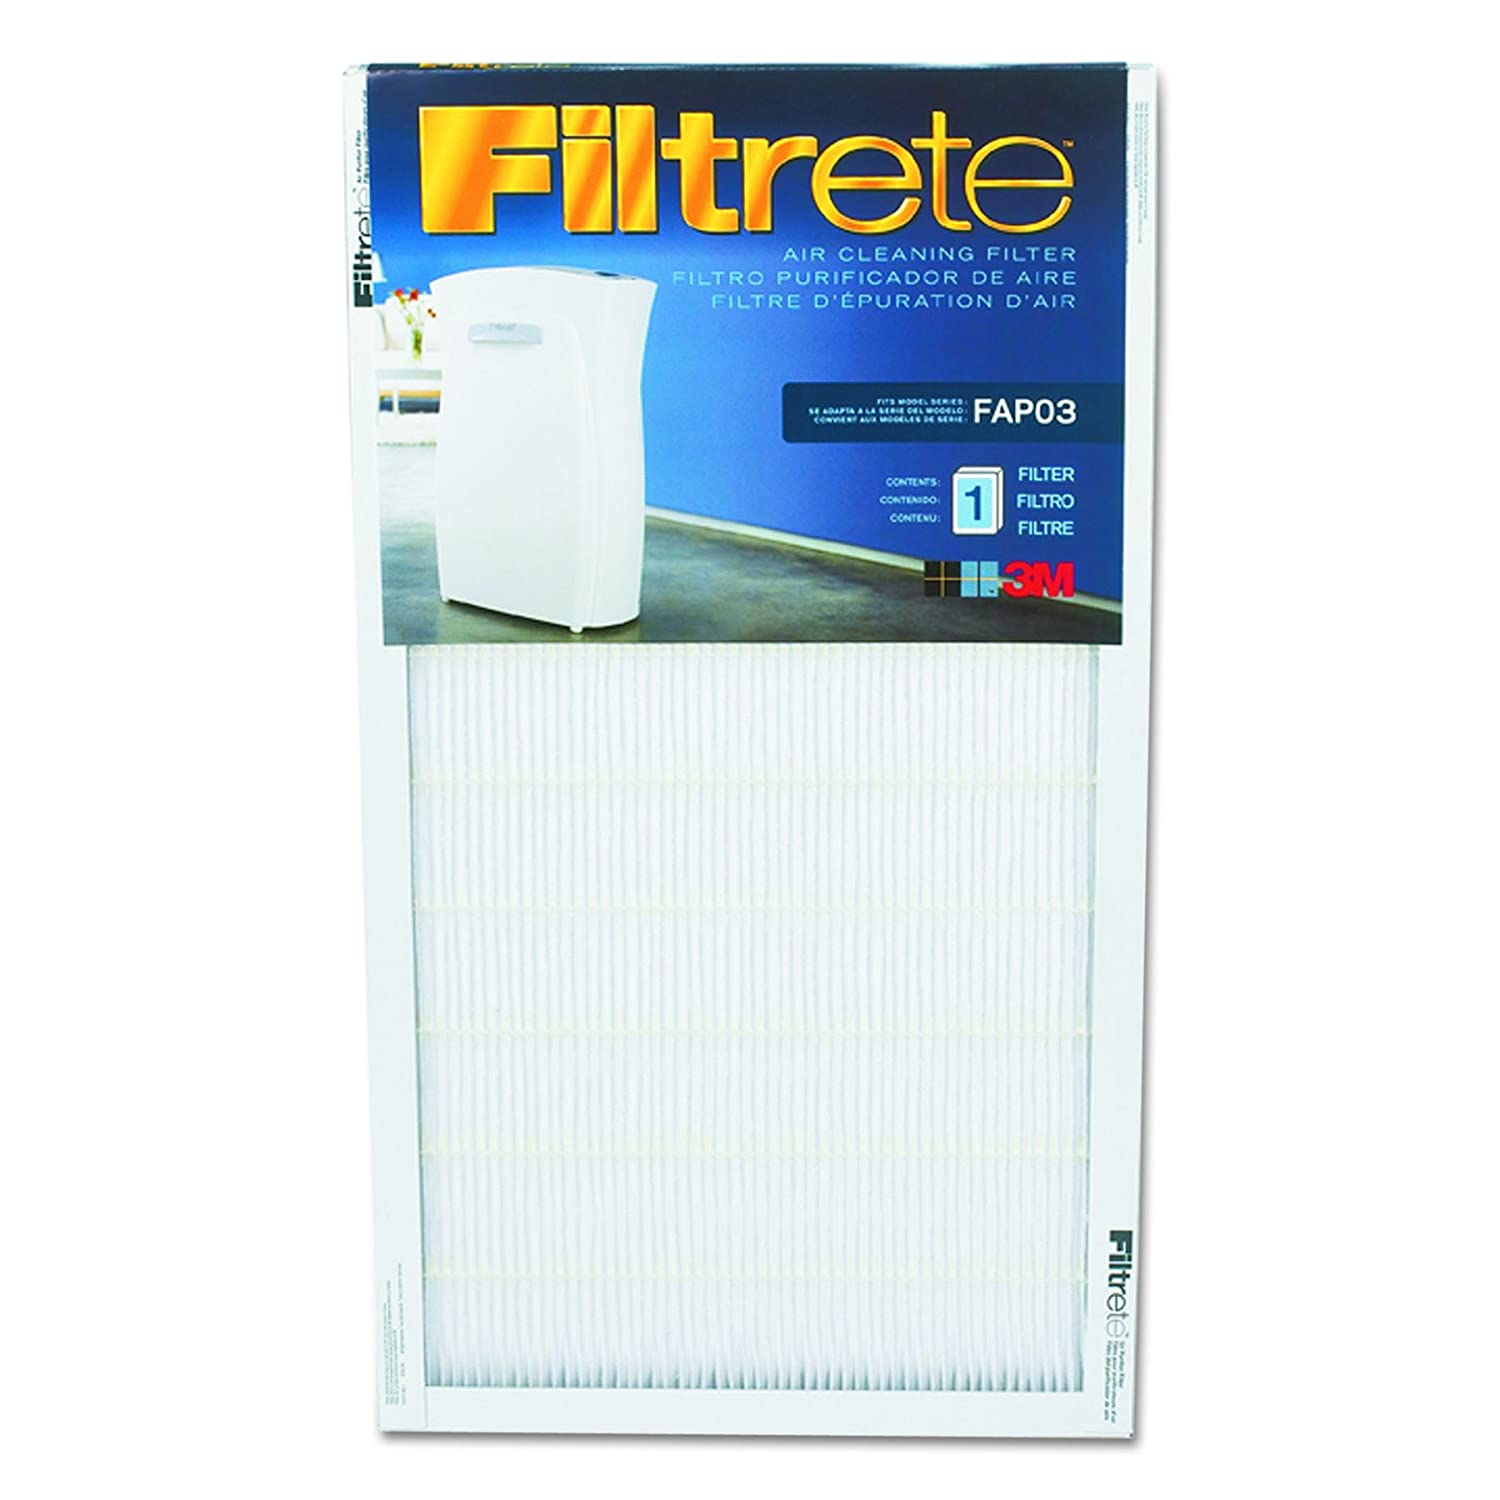 Filtrete Air Cleaning Filter, 11.75 in x 21.44 in x .75 in, 1/Pack 3M FAPF03